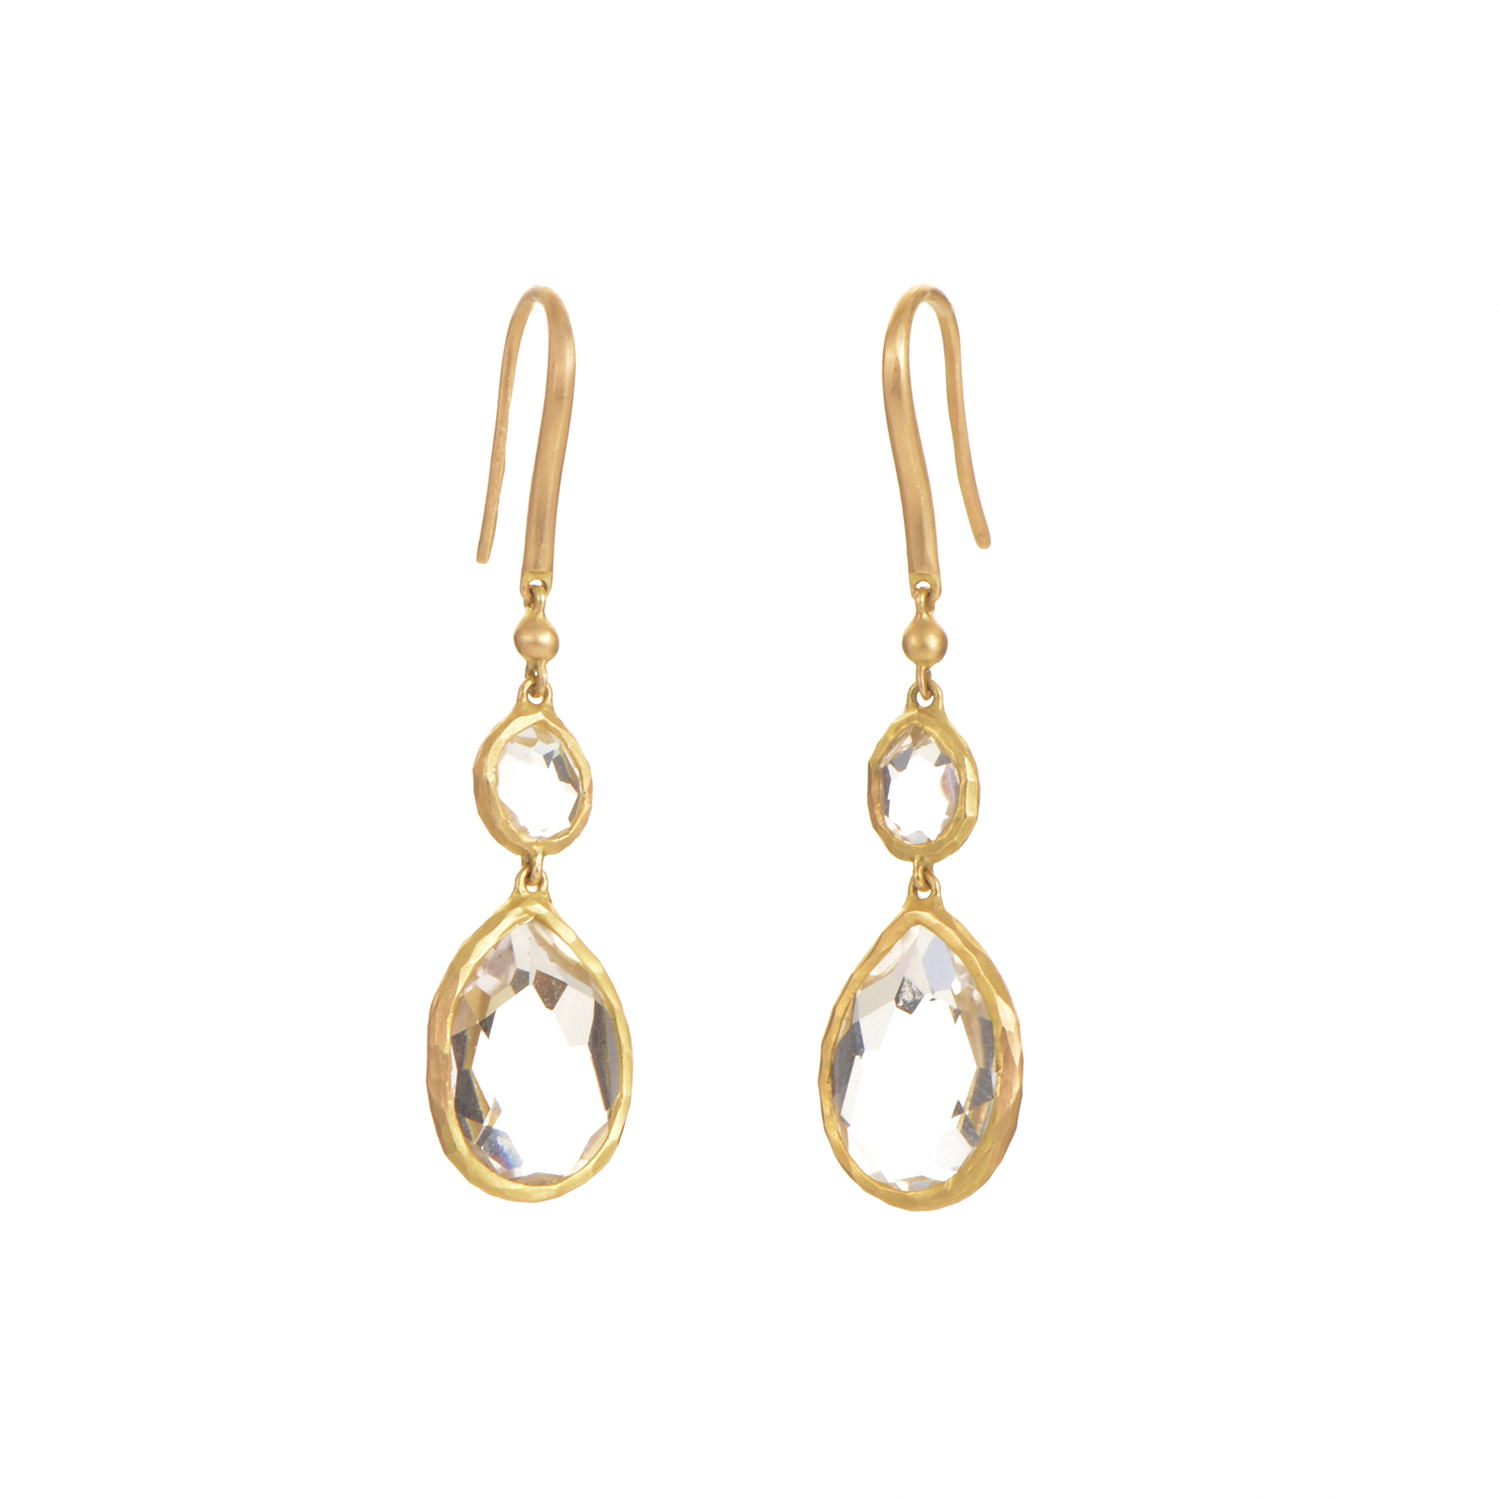 18K Yellow Gold & White Topaz Dangle Earrings